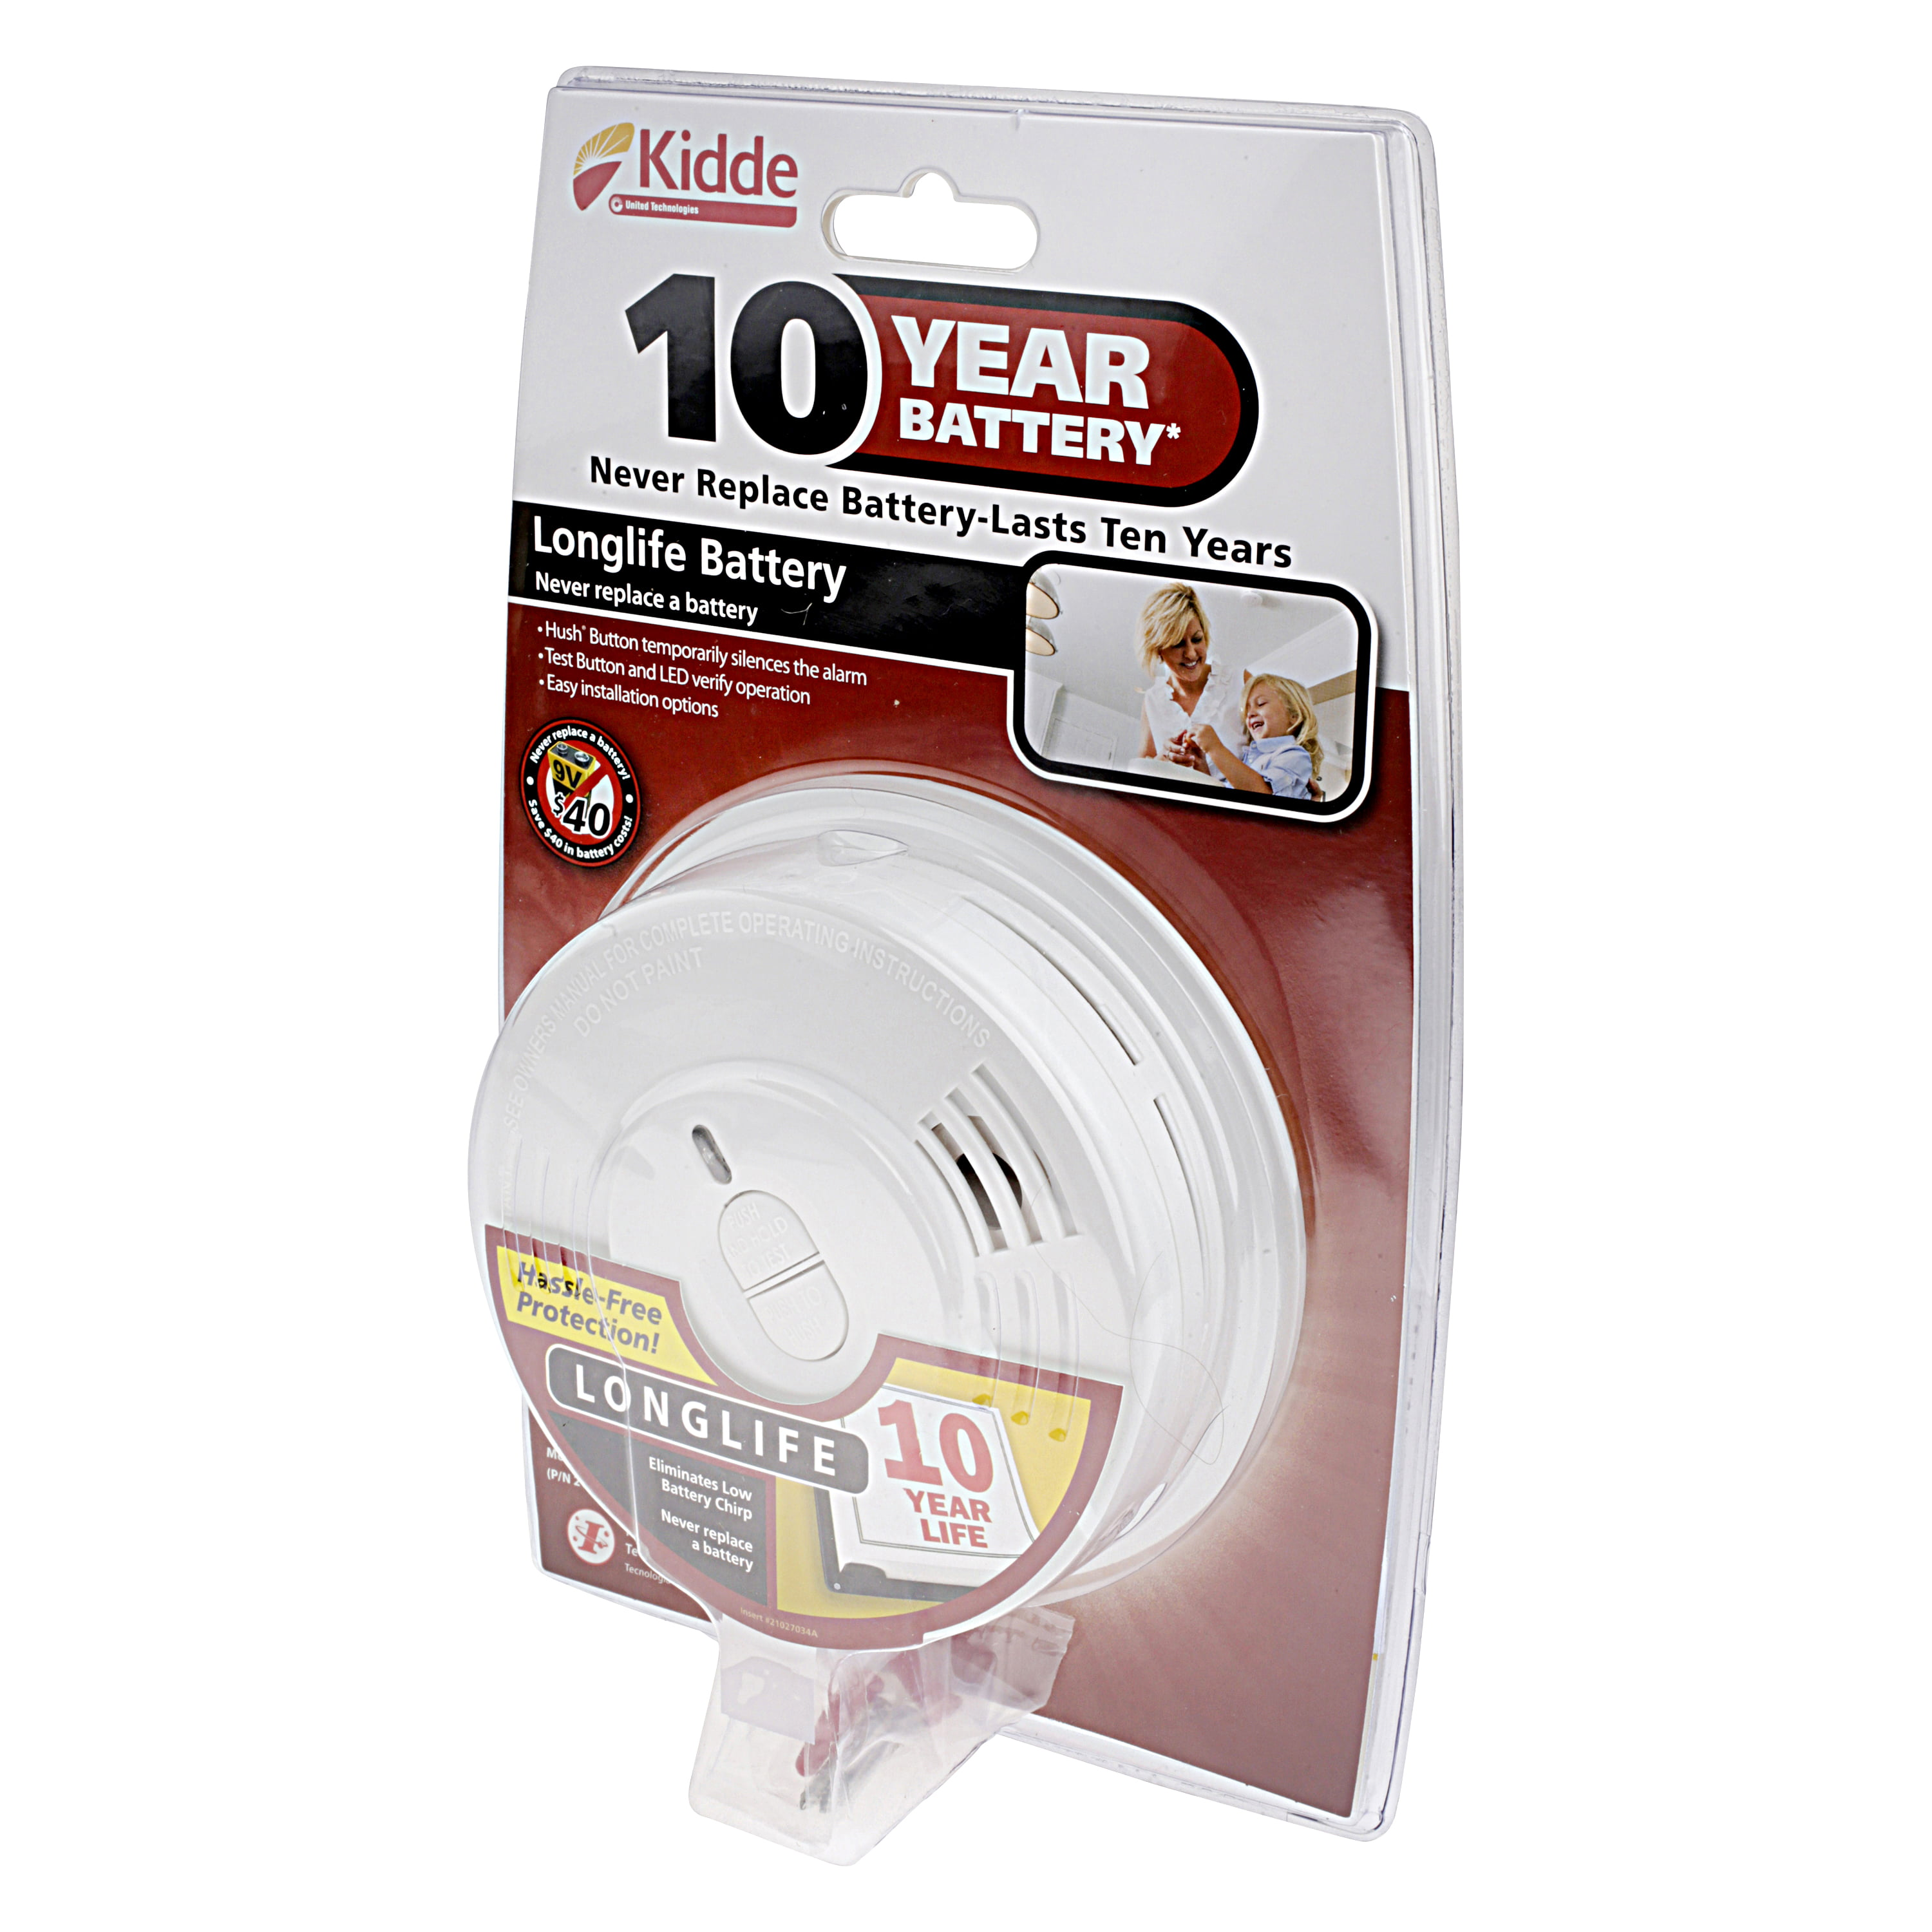 Kidde Sealed Lithium Battery Power Smoke Detector I9010 by Kidde Safety